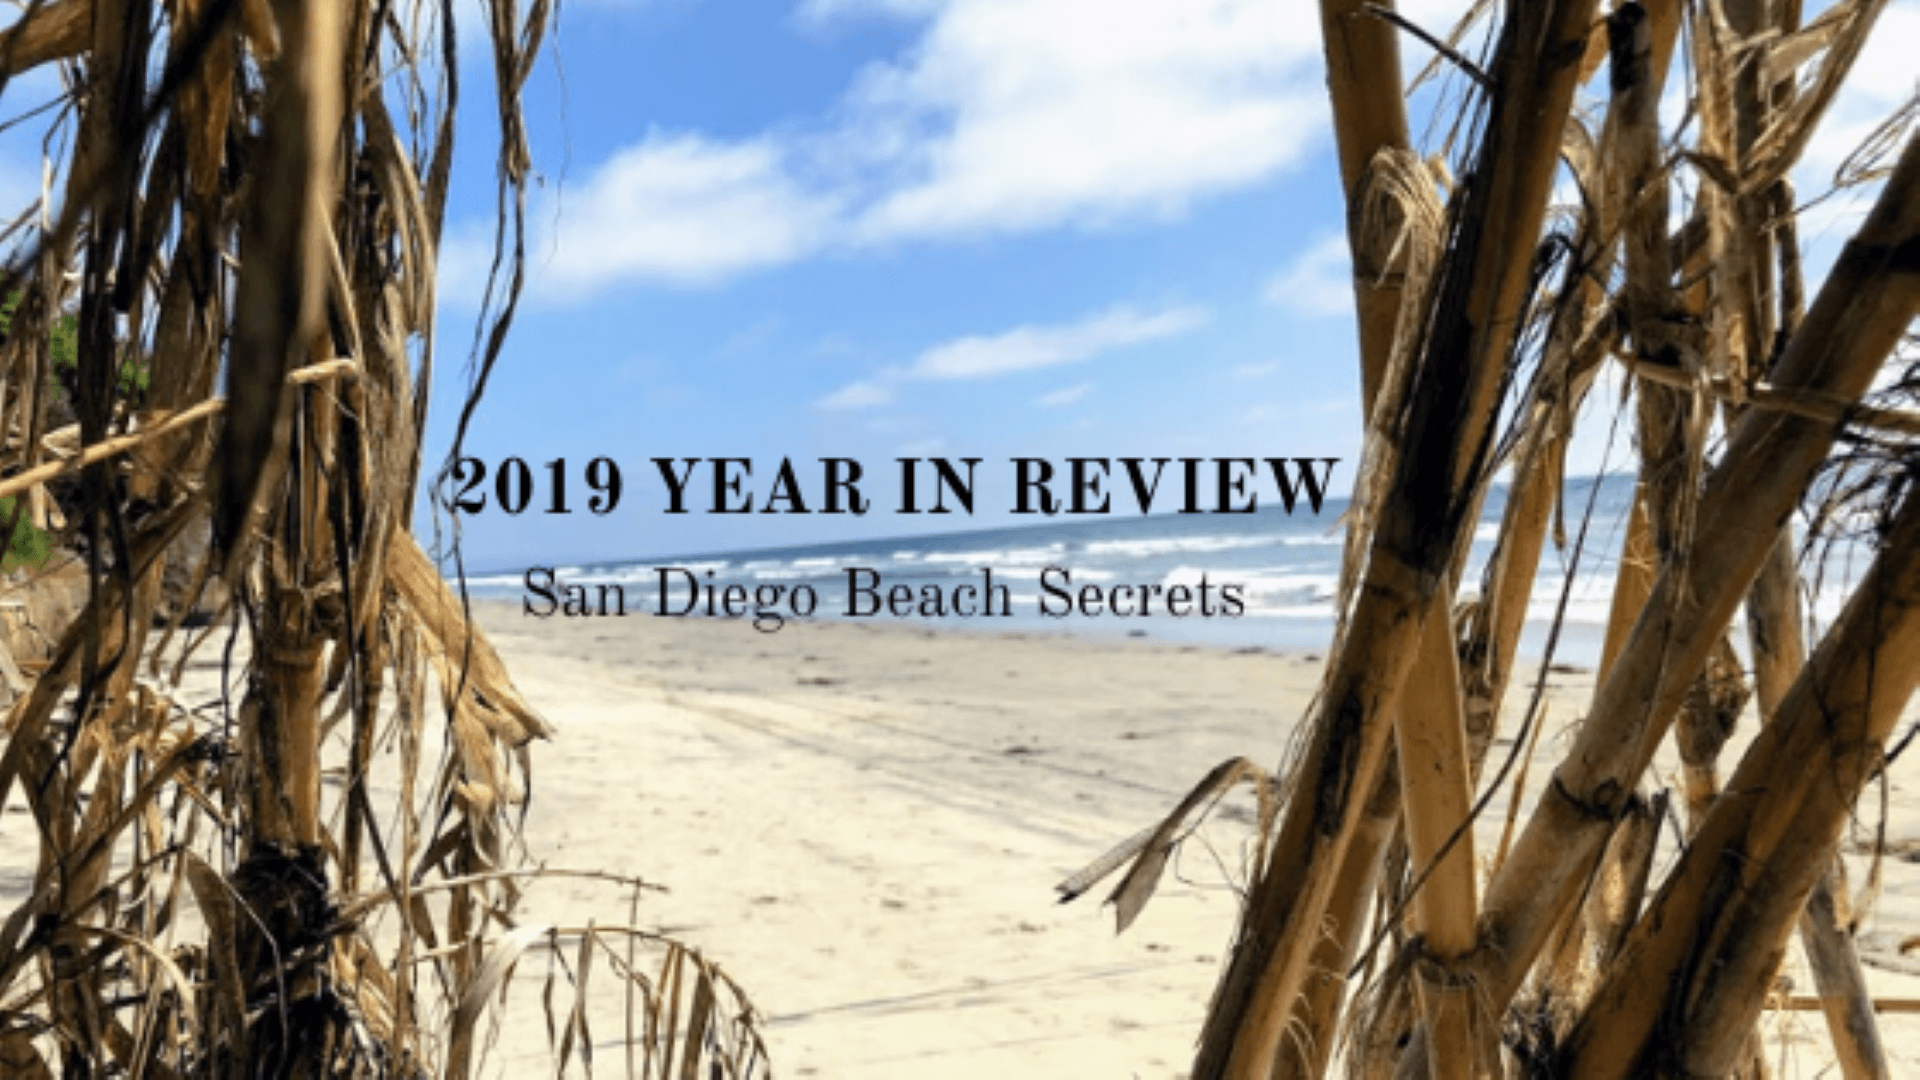 2019 Year in Review Large featured image